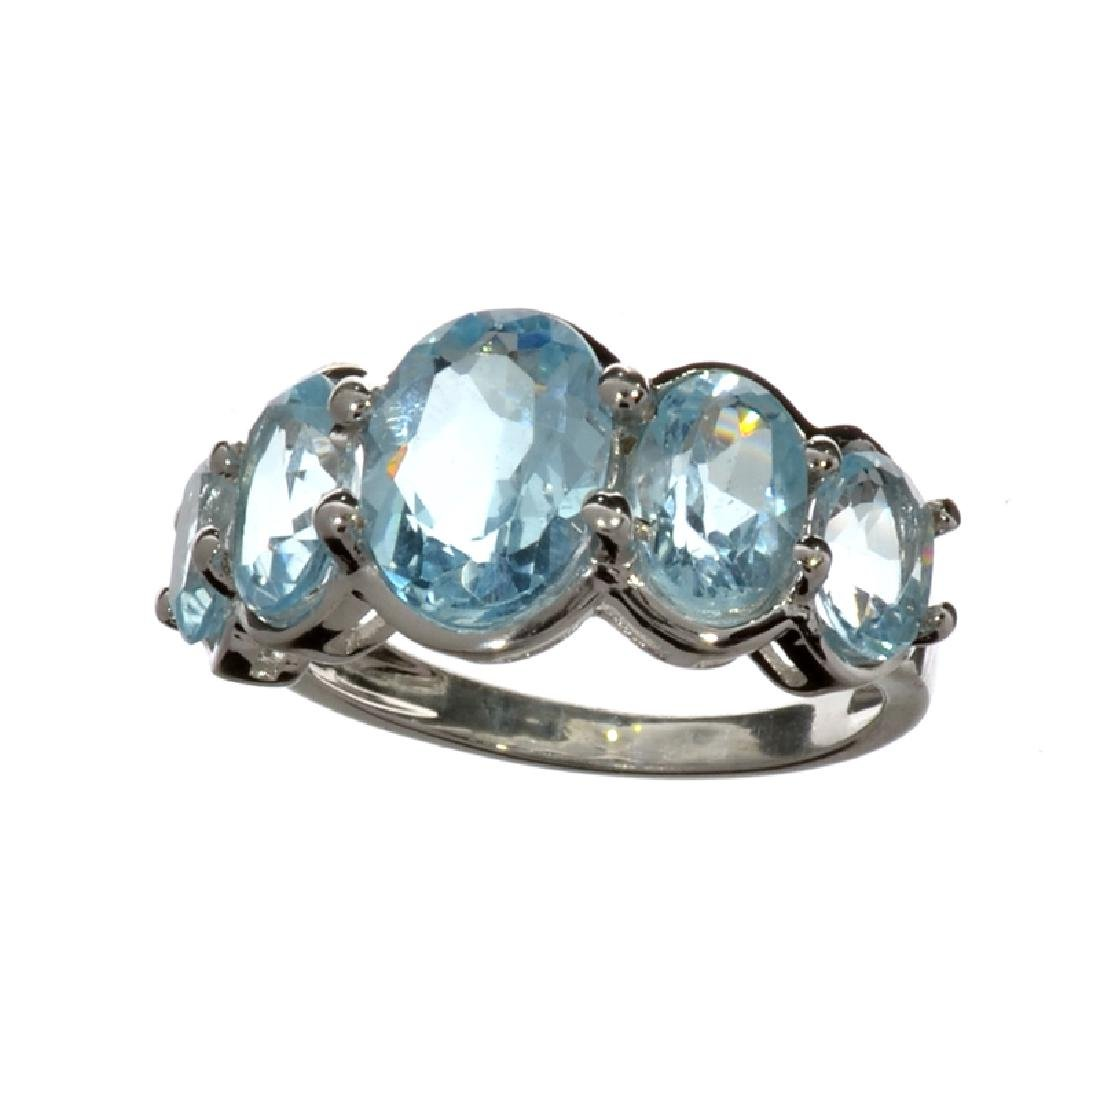 APP: 1.4k Fine Jewelry 5.61CT Oval Cut Blue Topaz And